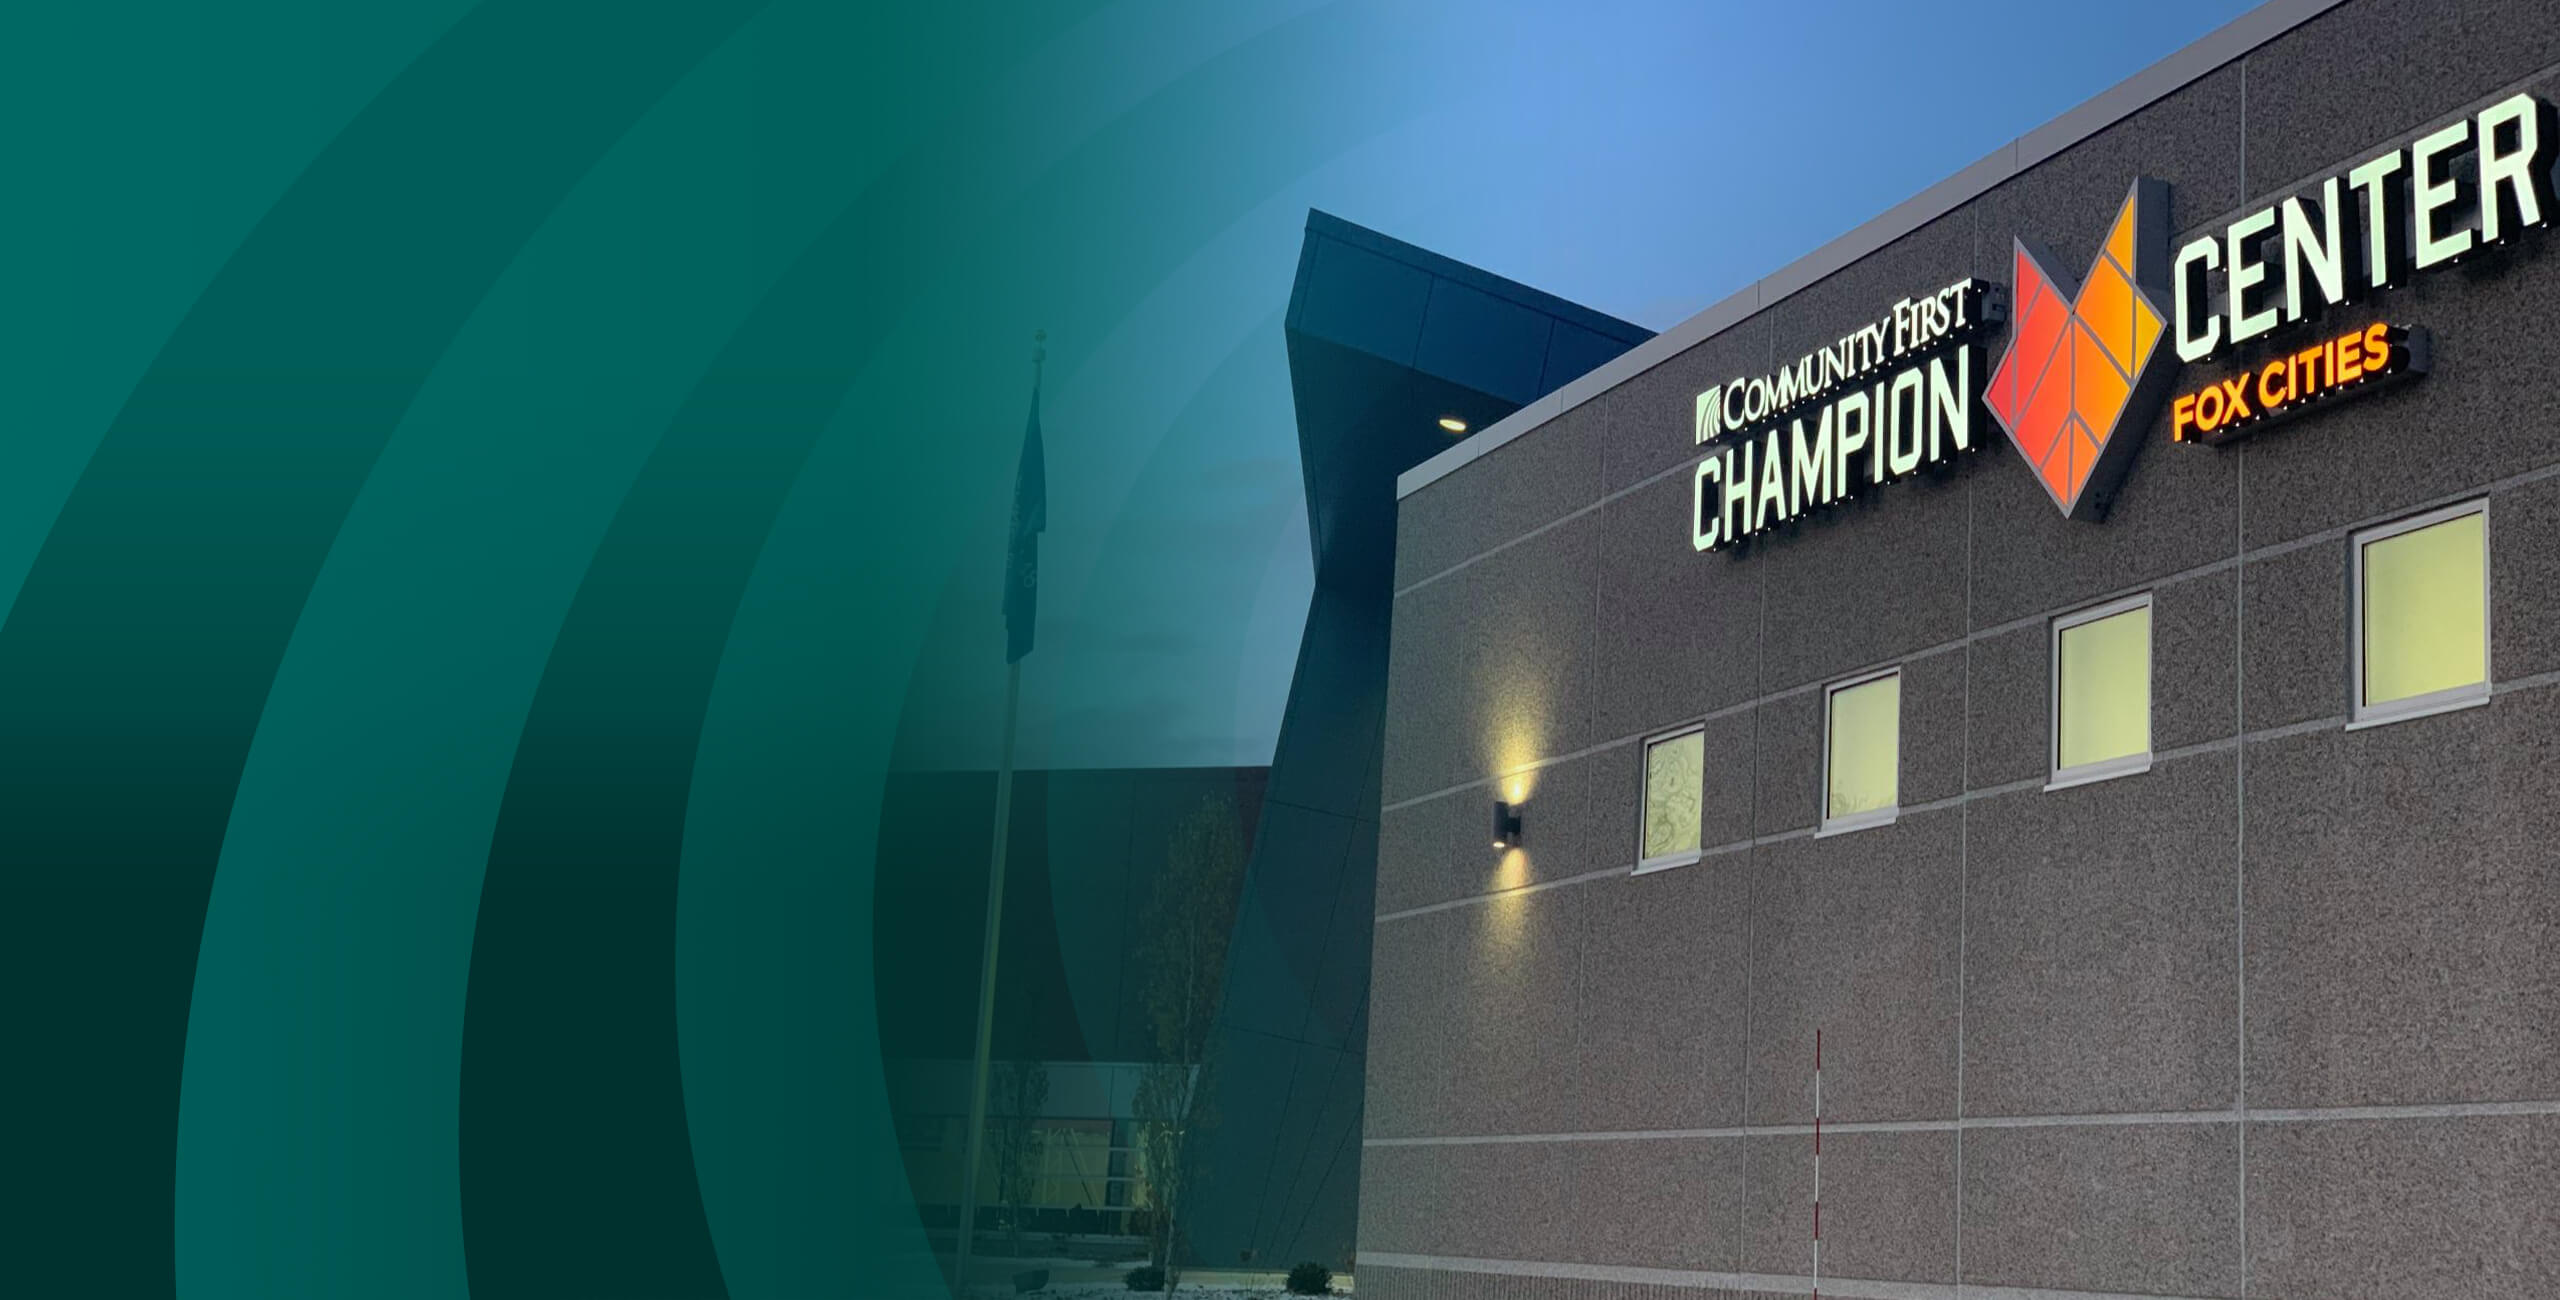 Community First Champion Center.